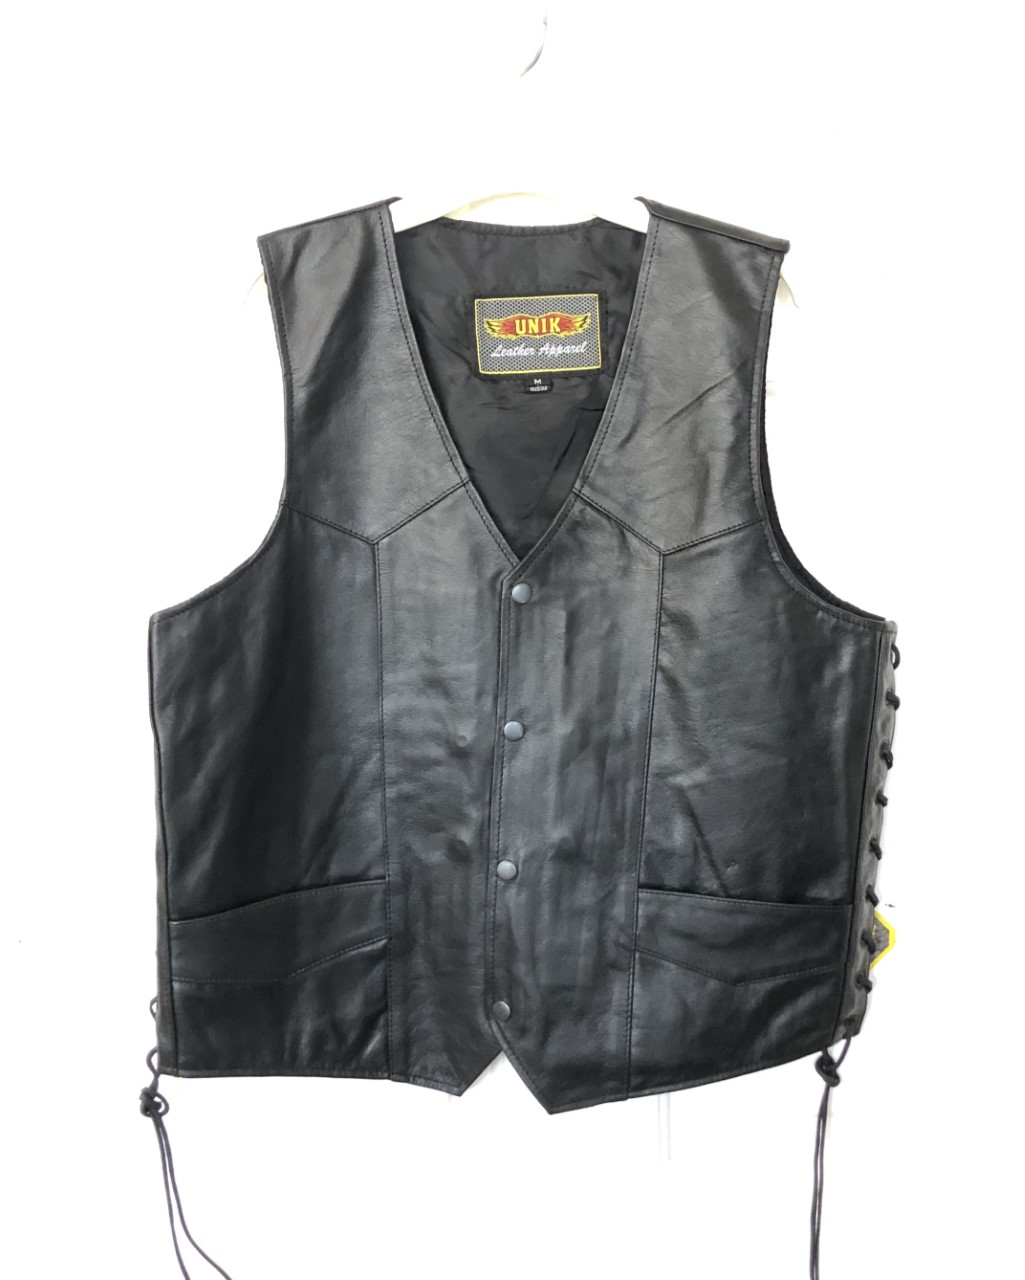 Lake Havasu Rockabilly Reunion Thunder-Rode Motorcycle Accessories Leather Vests Just $39